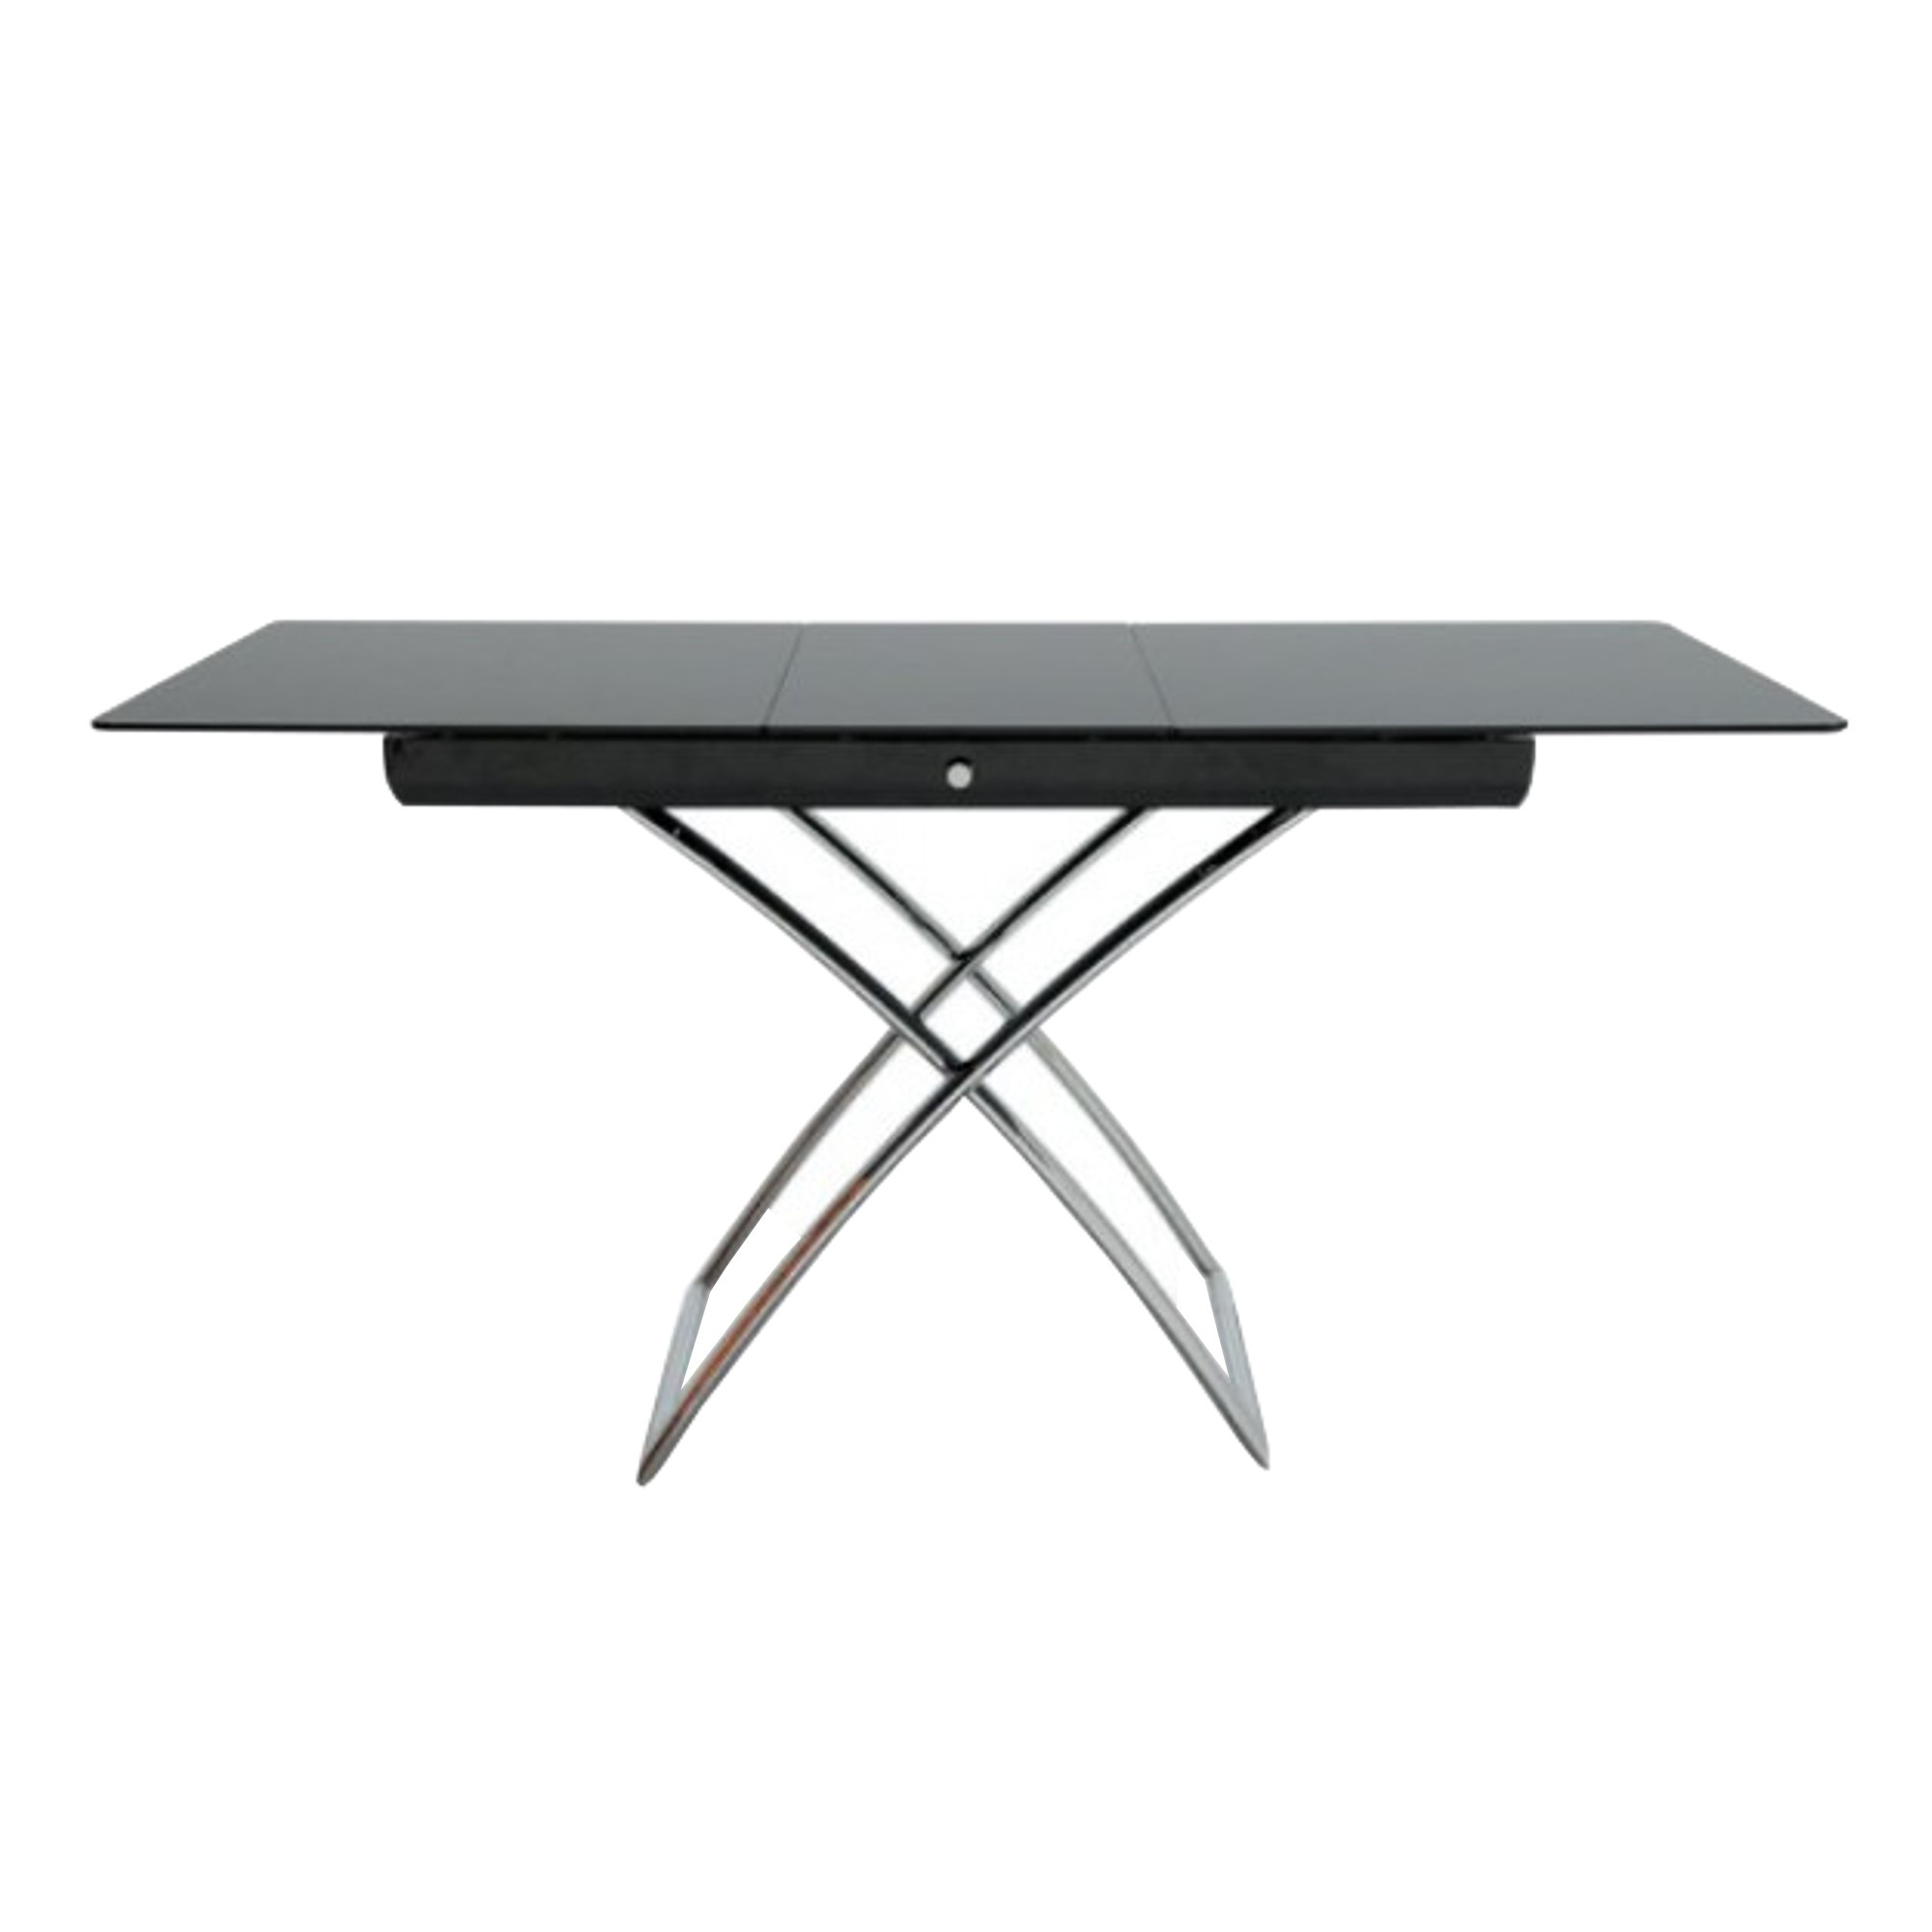 MAGIC-J | Tavoli Allungabili | Tavoli | CONNUBIA BY CALLIGARIS ...